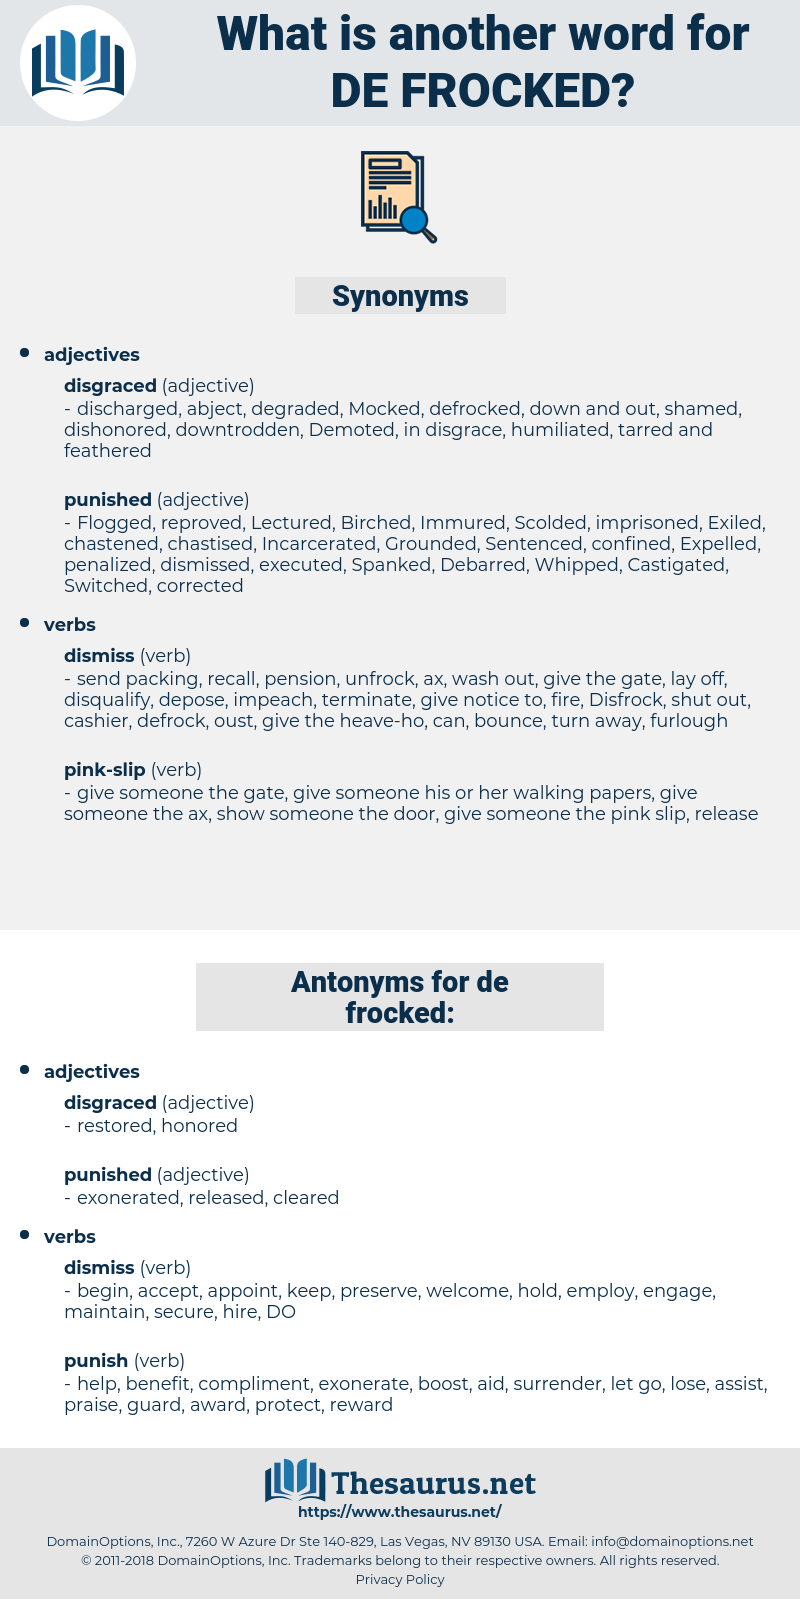 de frocked, synonym de frocked, another word for de frocked, words like de frocked, thesaurus de frocked